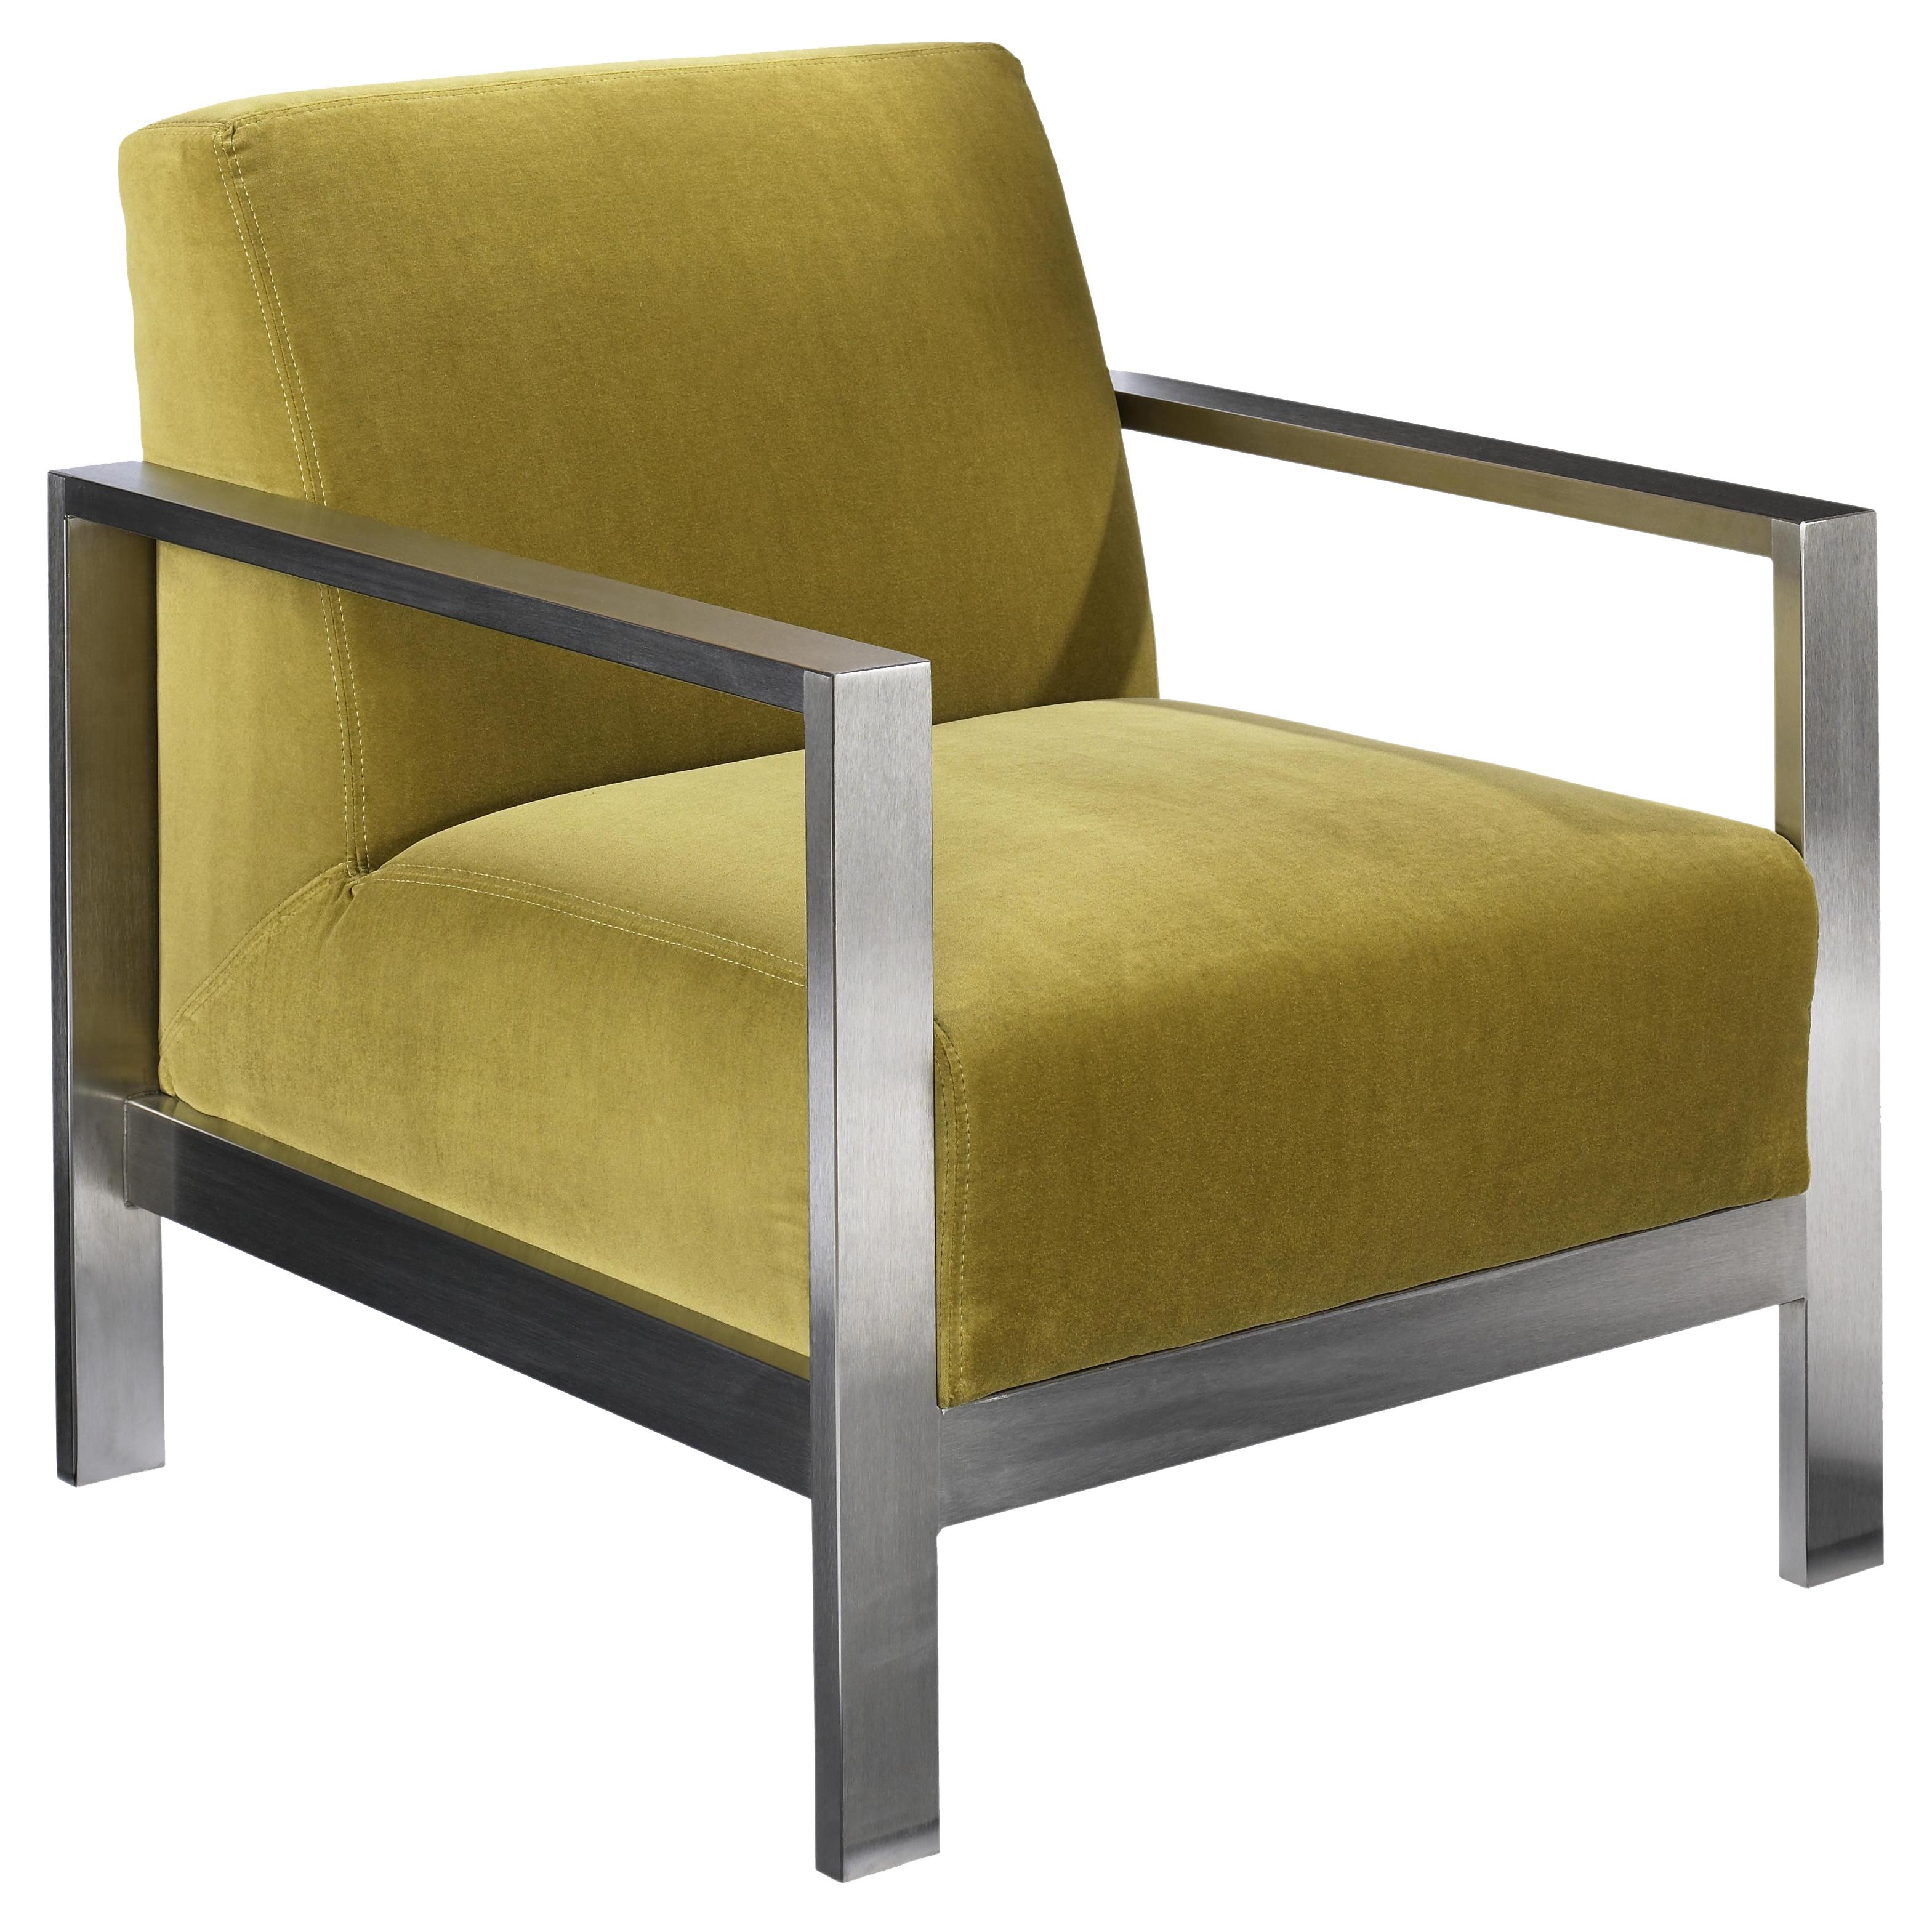 Accentuates Morrissey Metal Accent Chair at Williams & Kay